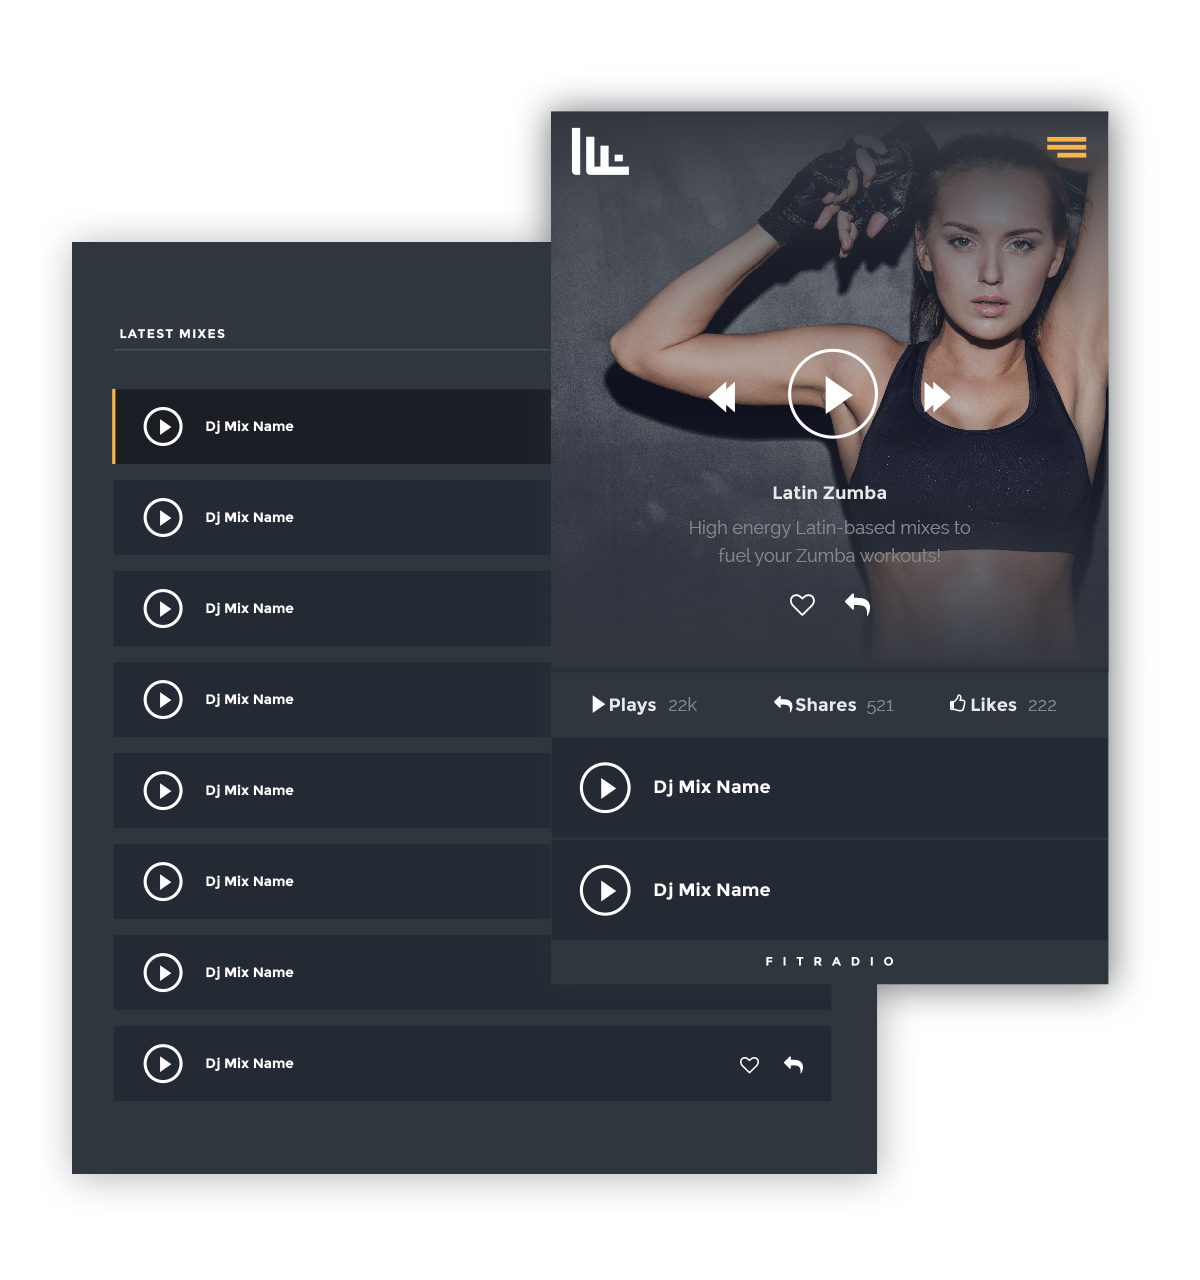 Become a Fit Radio DJ | Top Workout Music App